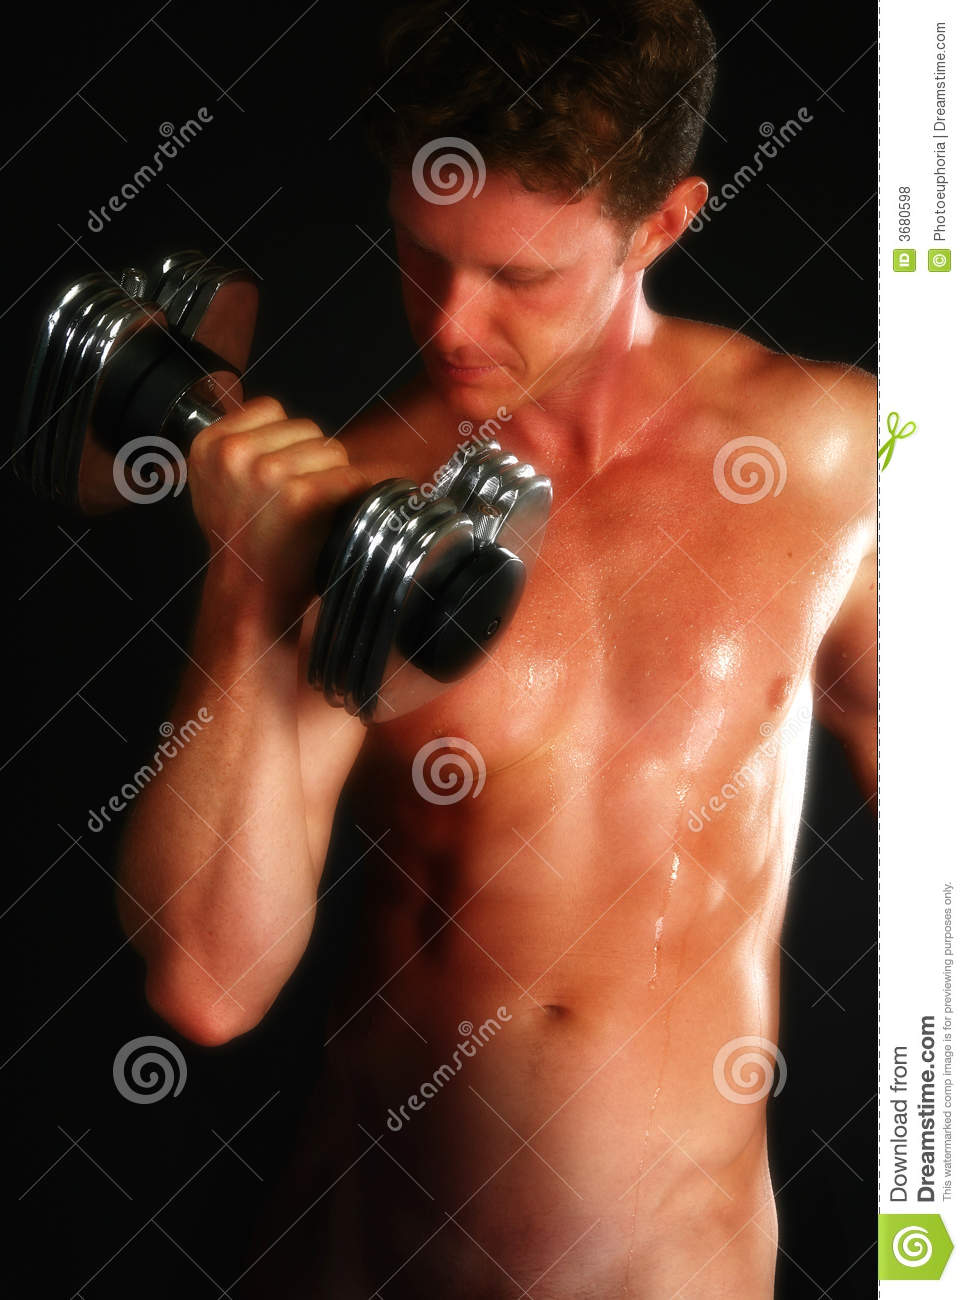 Attractive nude male lifting weights over black background.